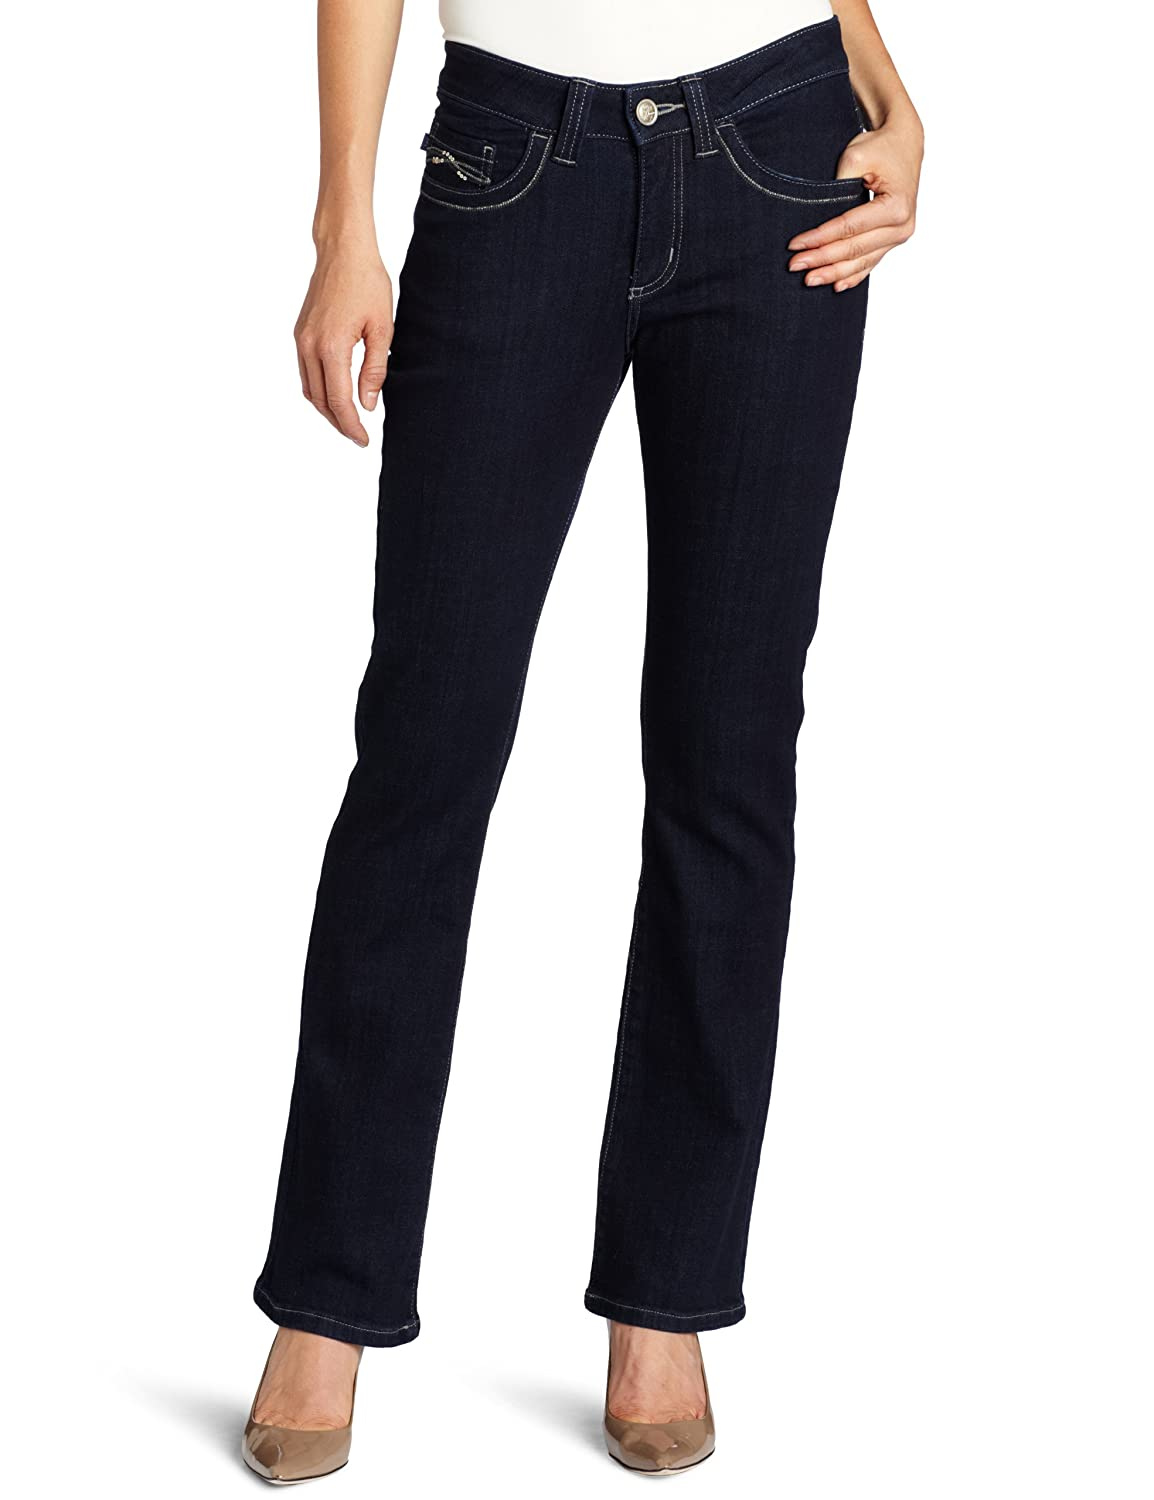 Lee Women's Slender Secret Annabel Bootcut Jean